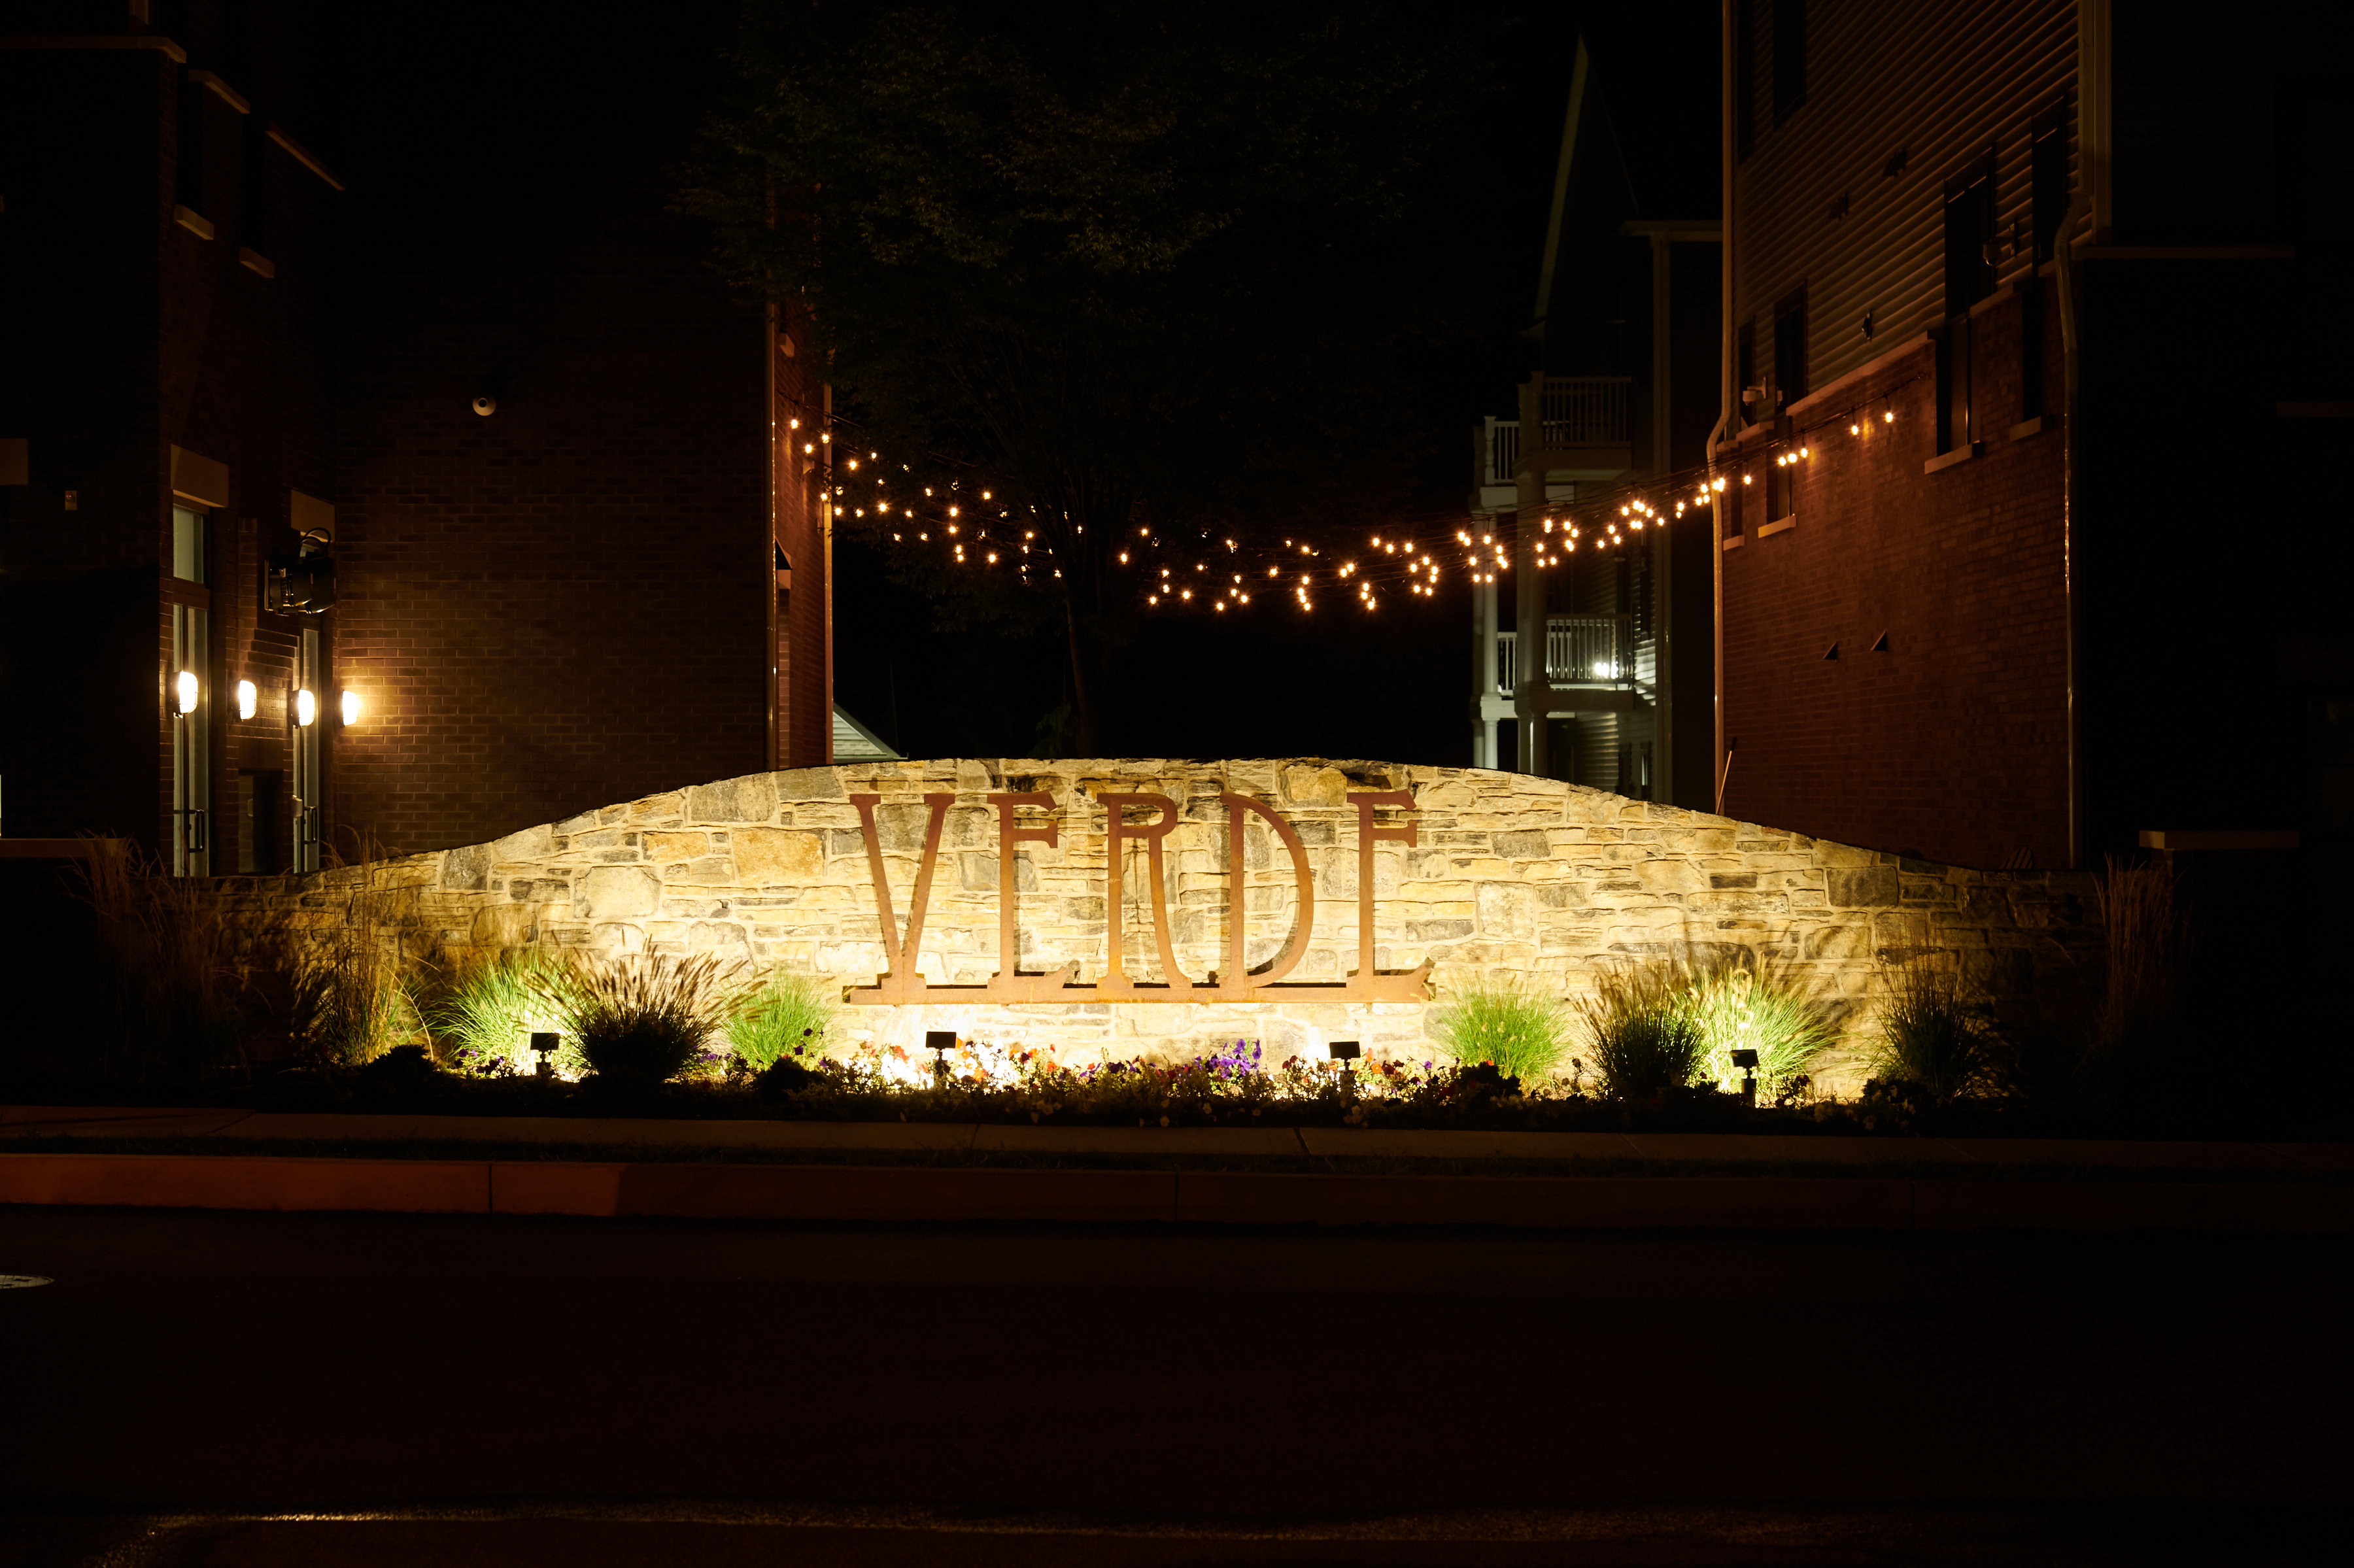 Exterior of Verde Apartments showing the logo with a stone background